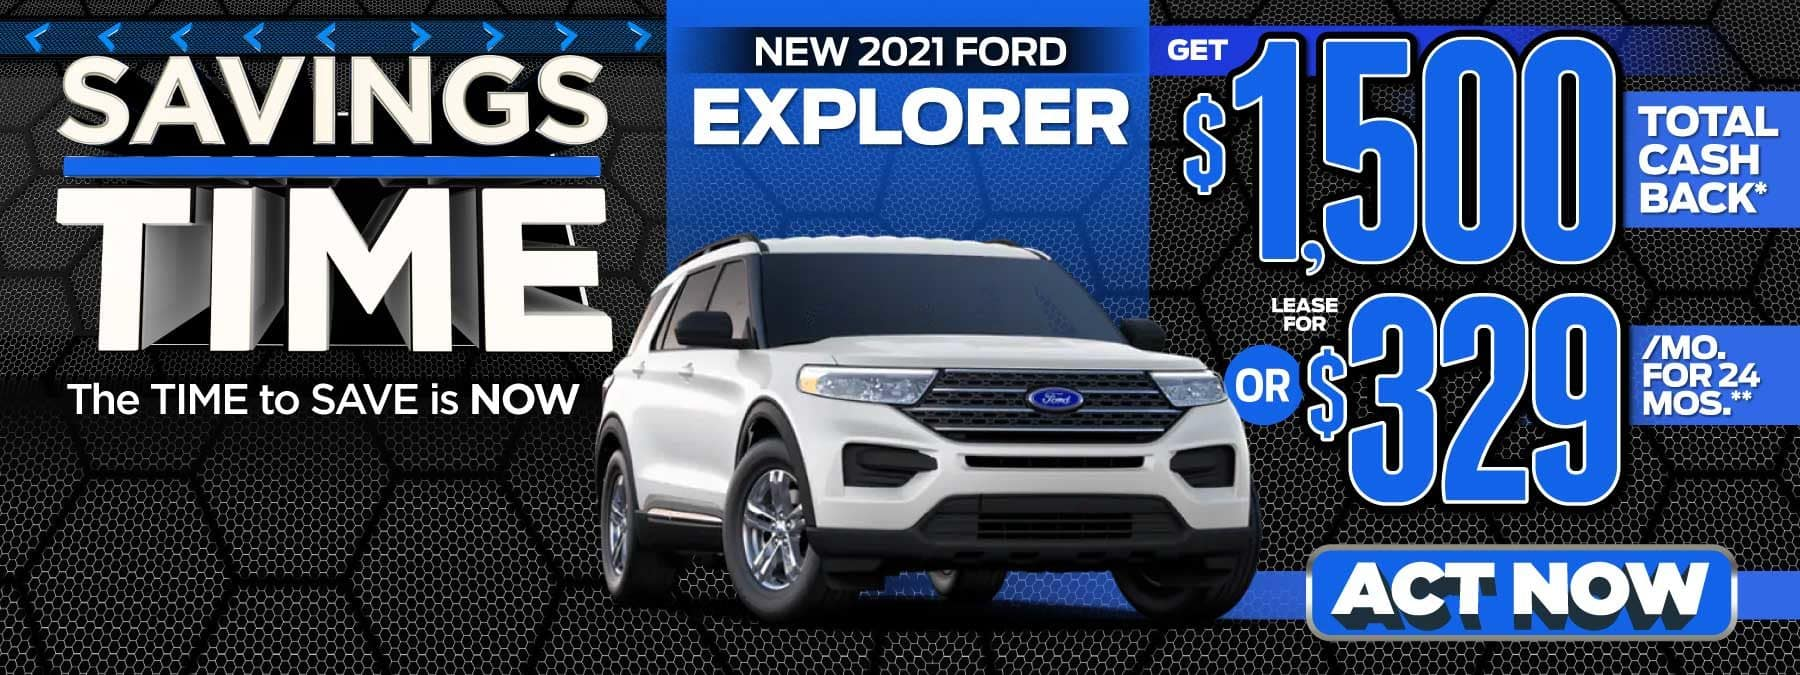 New 2021 Ford Explorer - Get $1,500 total cash back - Act Now